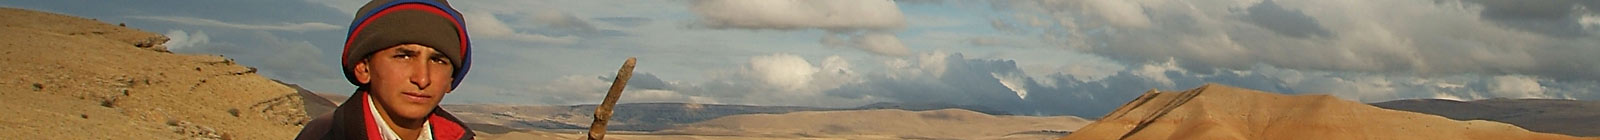 Turkey, shepherd Malatya, mountains, clouds, Banner